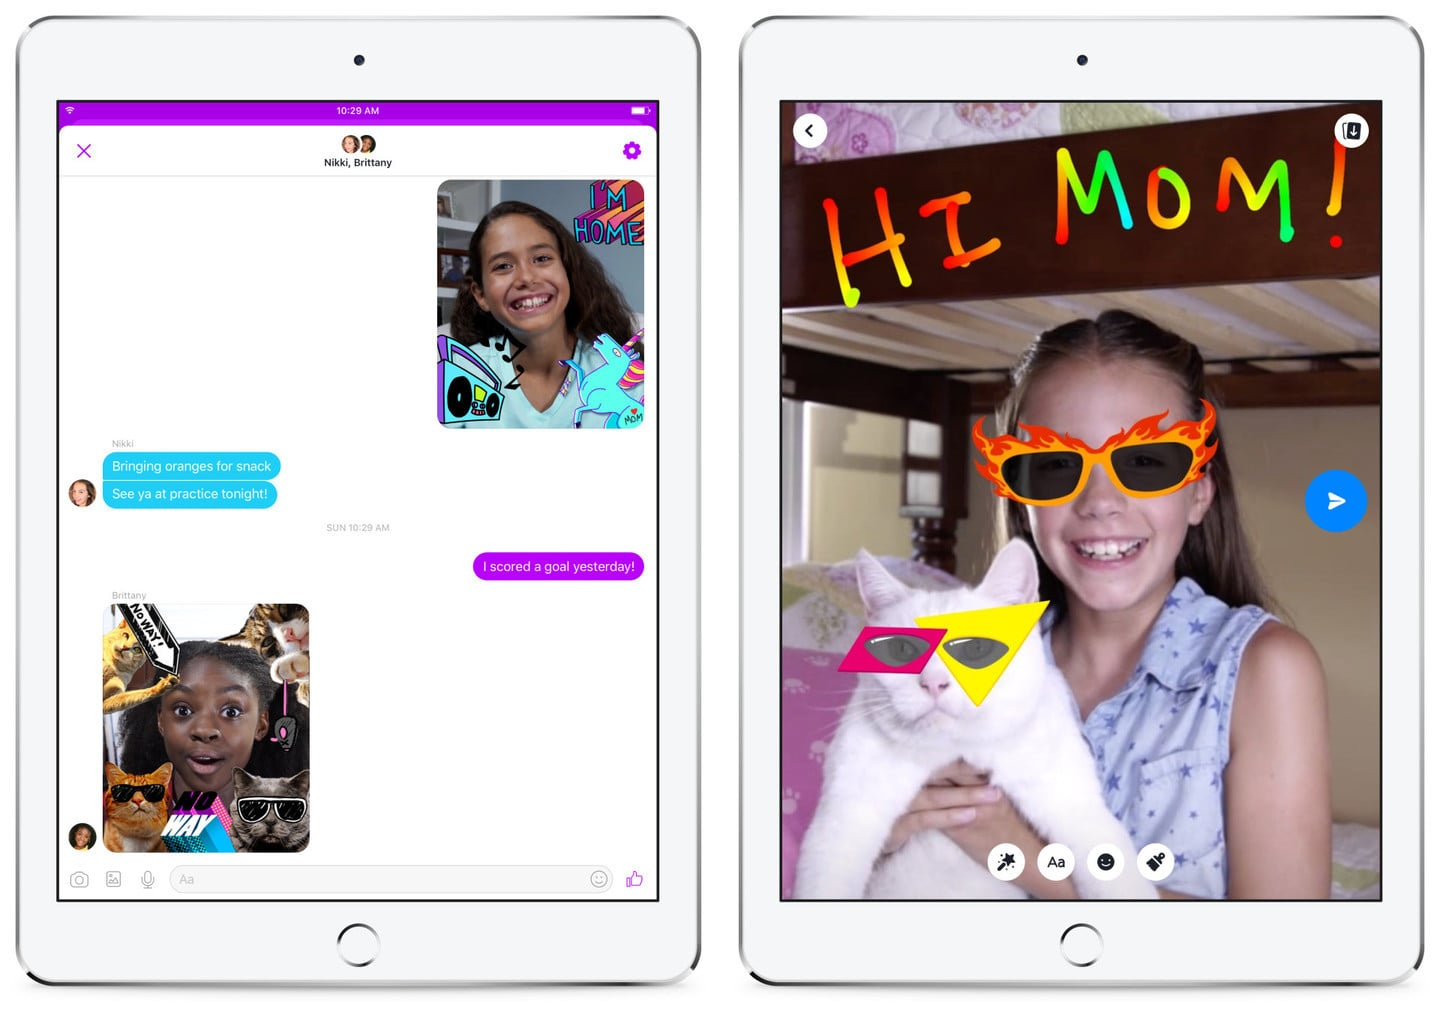 Facebook launches new messaging app for kids